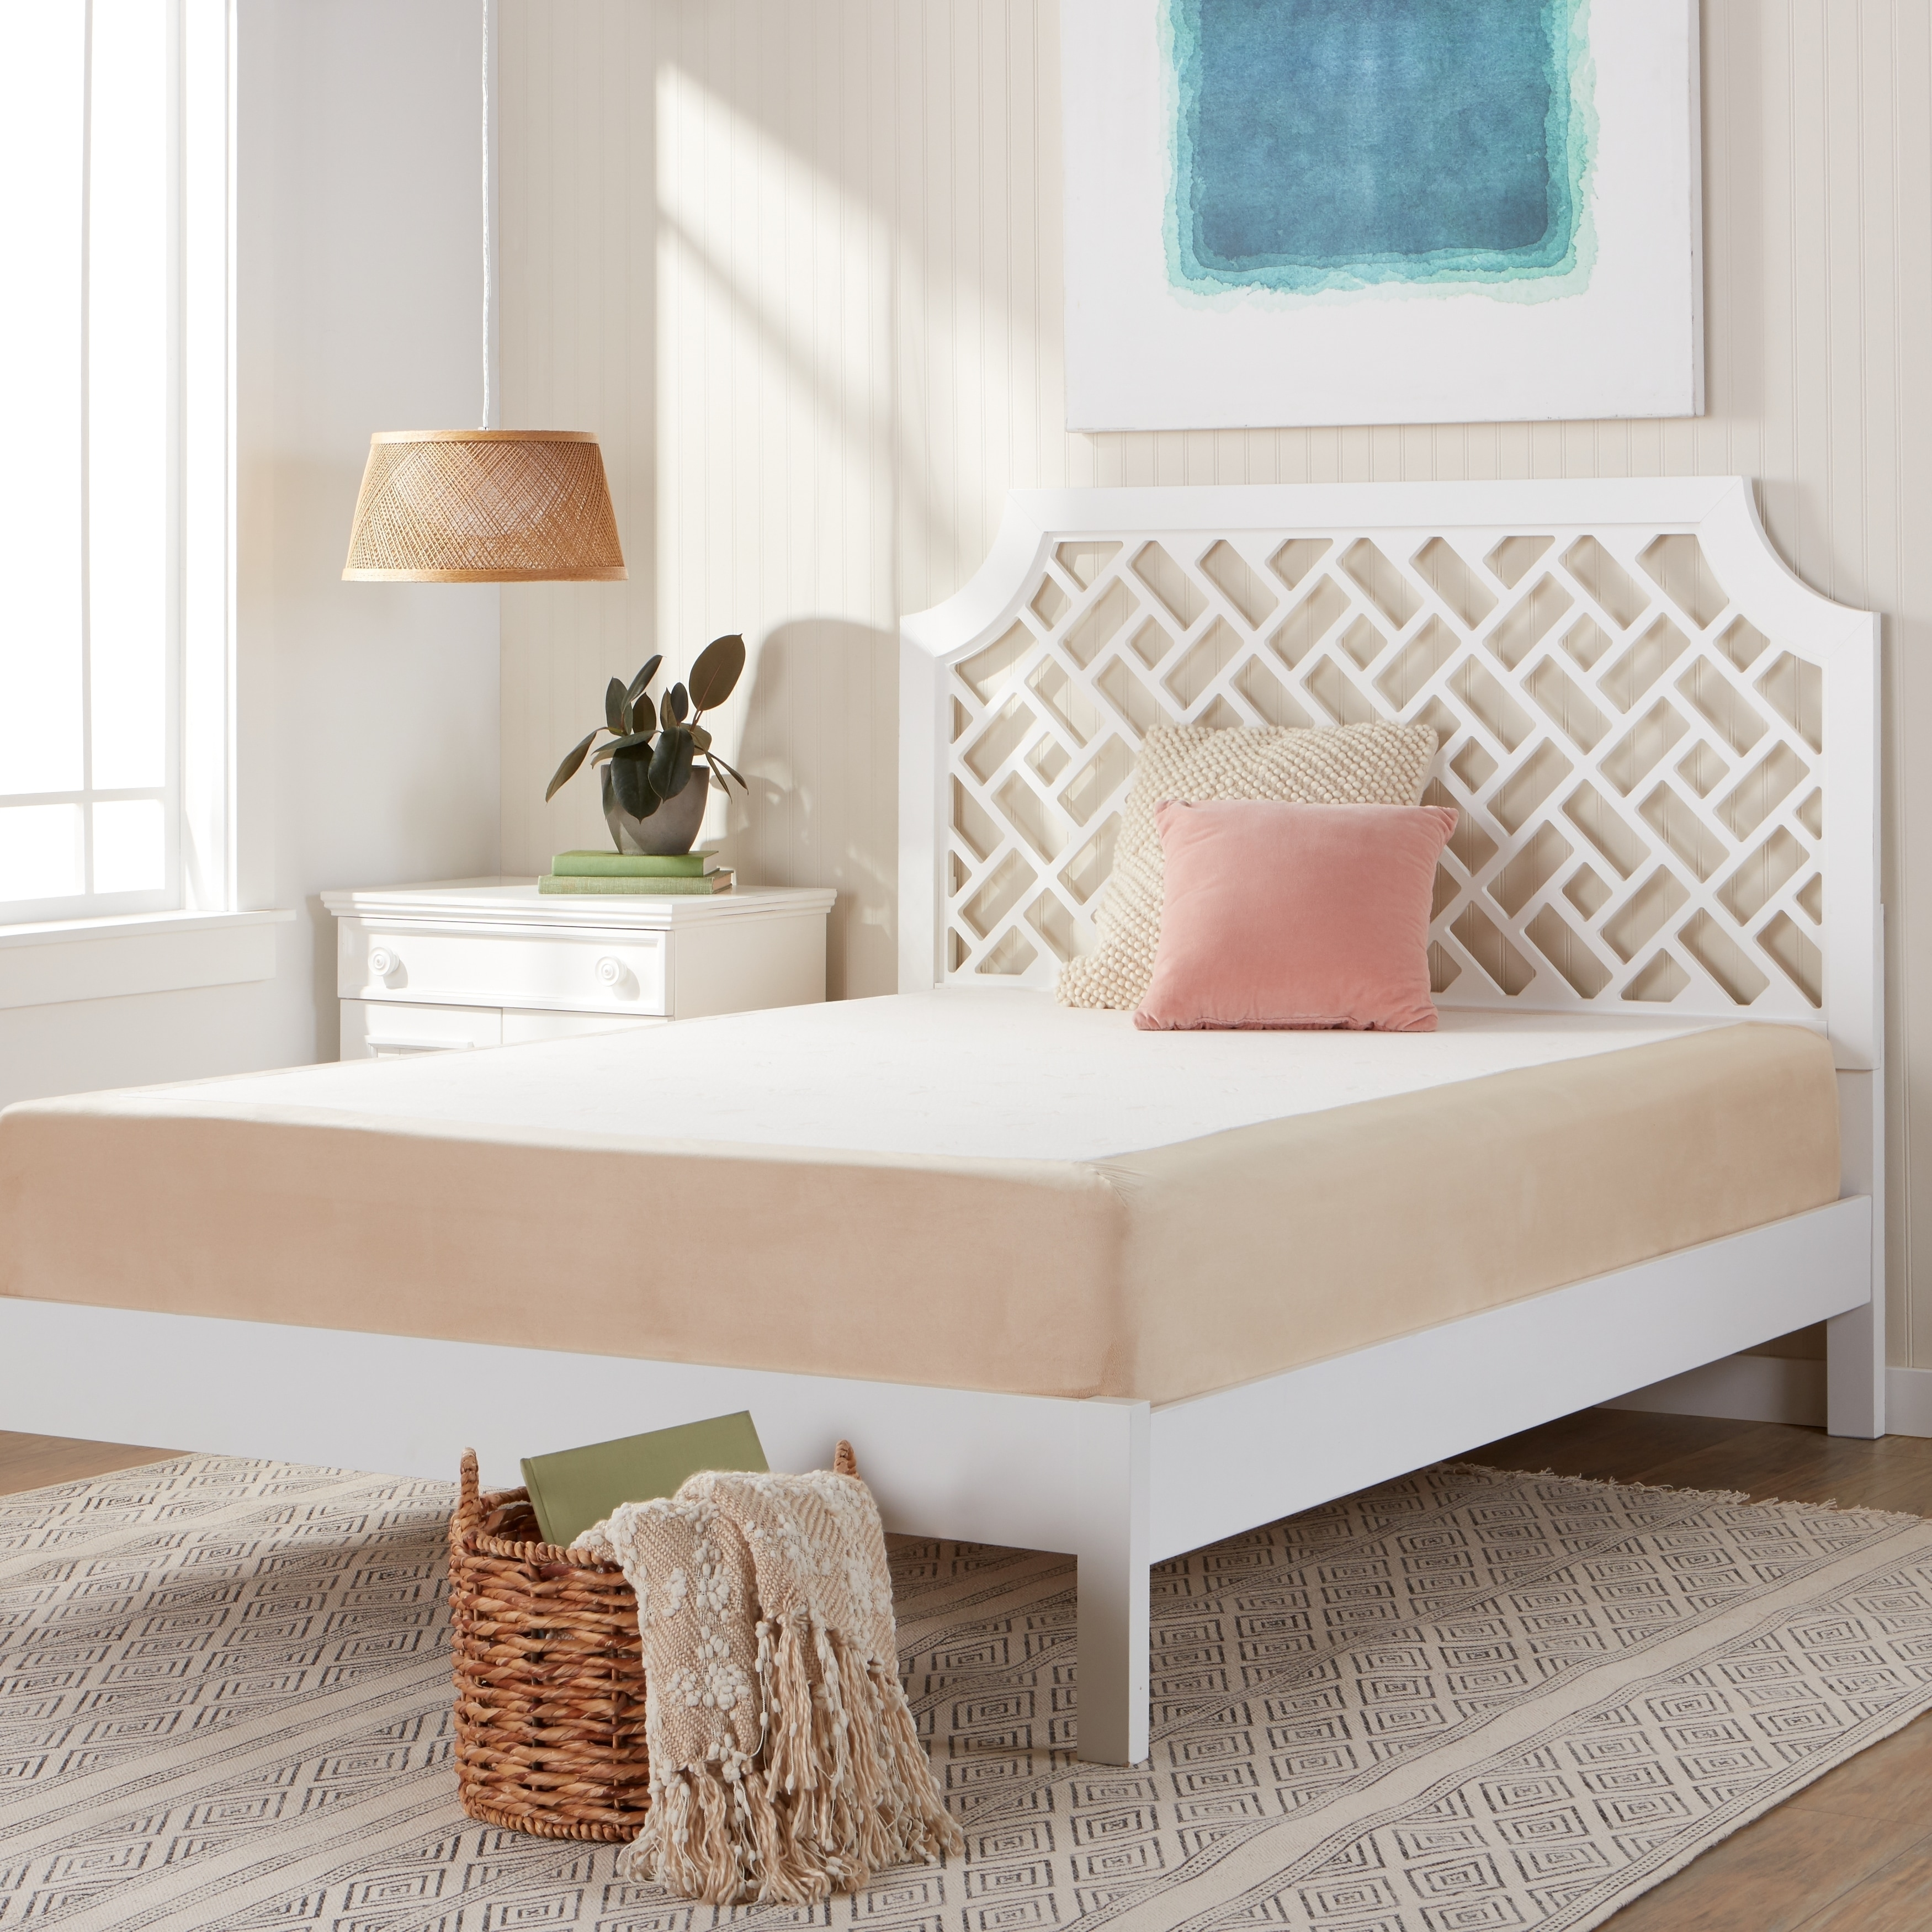 top product overstock mattresses size collection garden home premium spring noelle set king air shipping free pillow today mattress